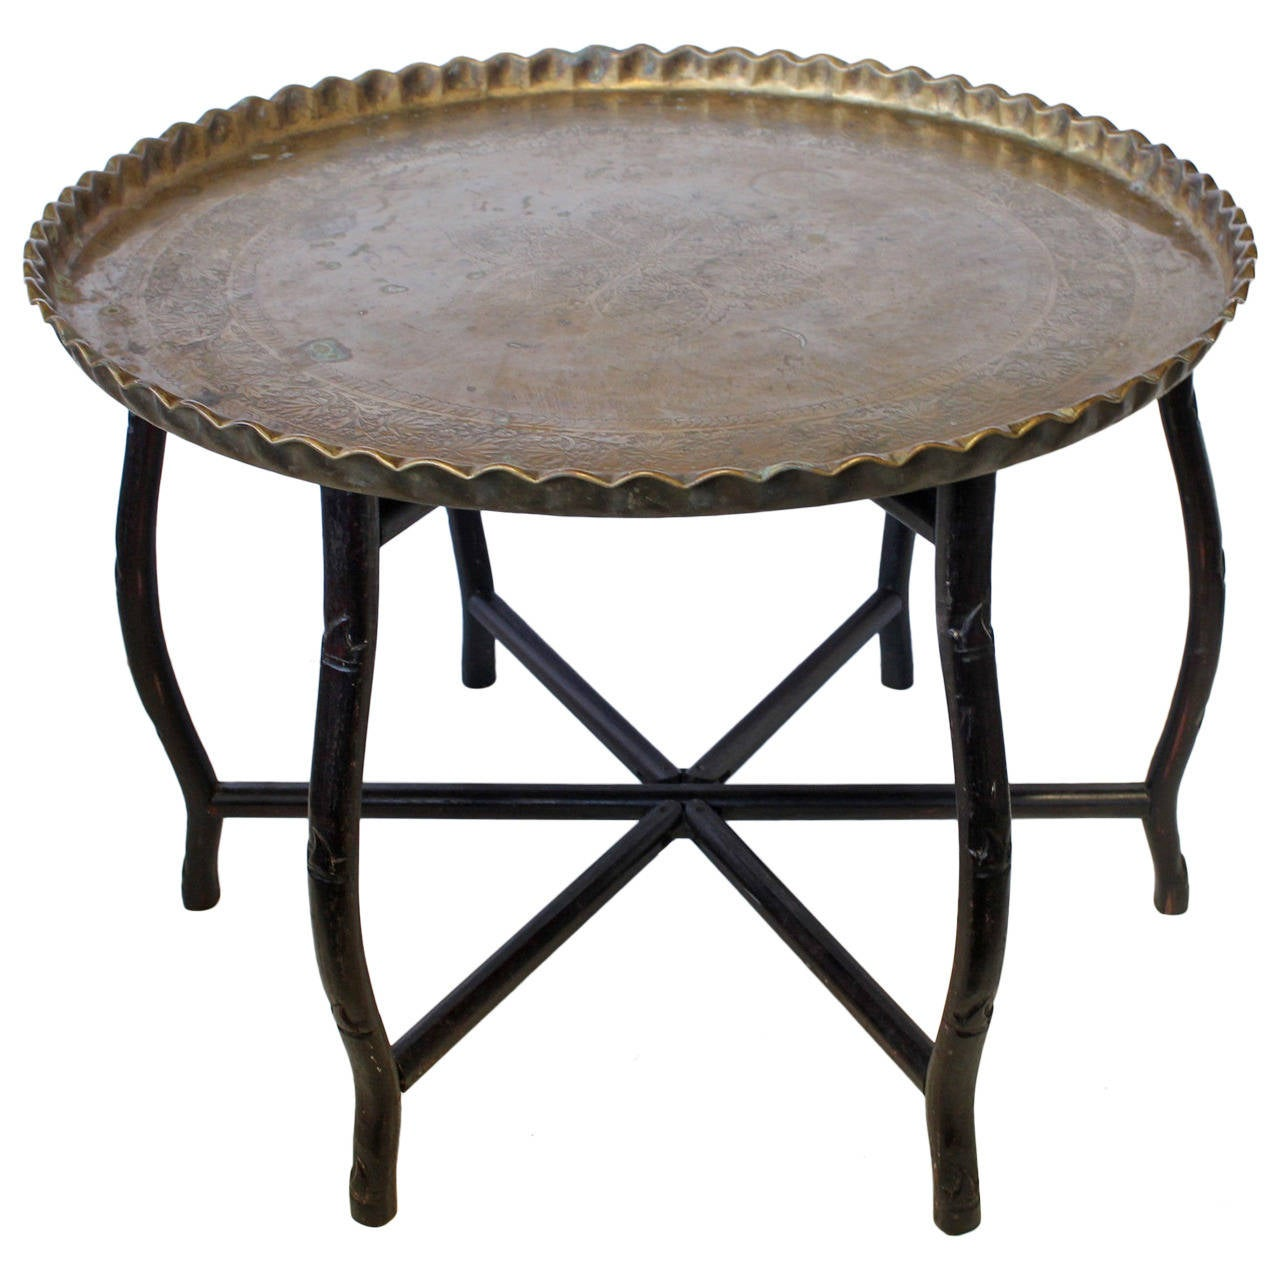 1920s Large Brass Tray Folding Table